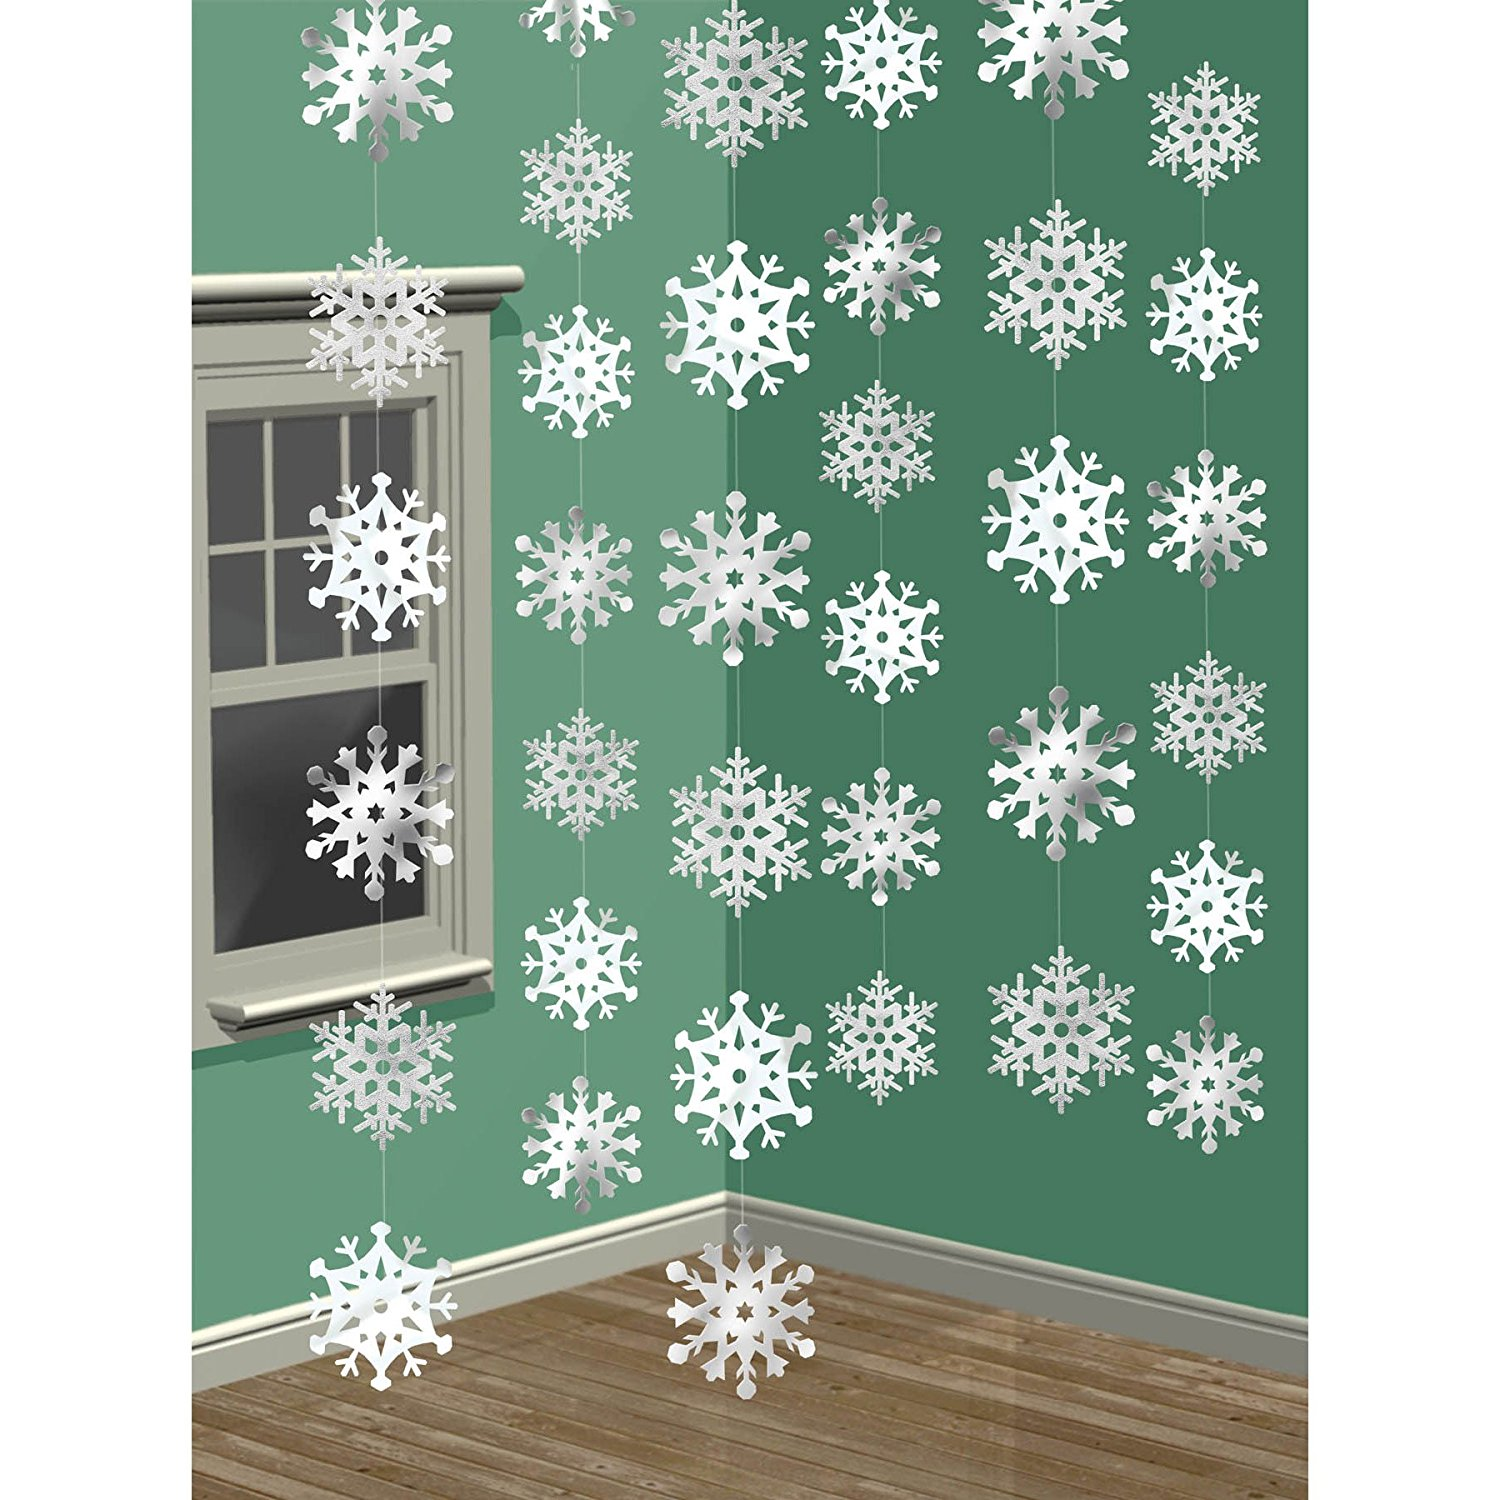 7 Amscan Winter Wonderland Christmas 3-D Snowflake Hanging Party Decoration